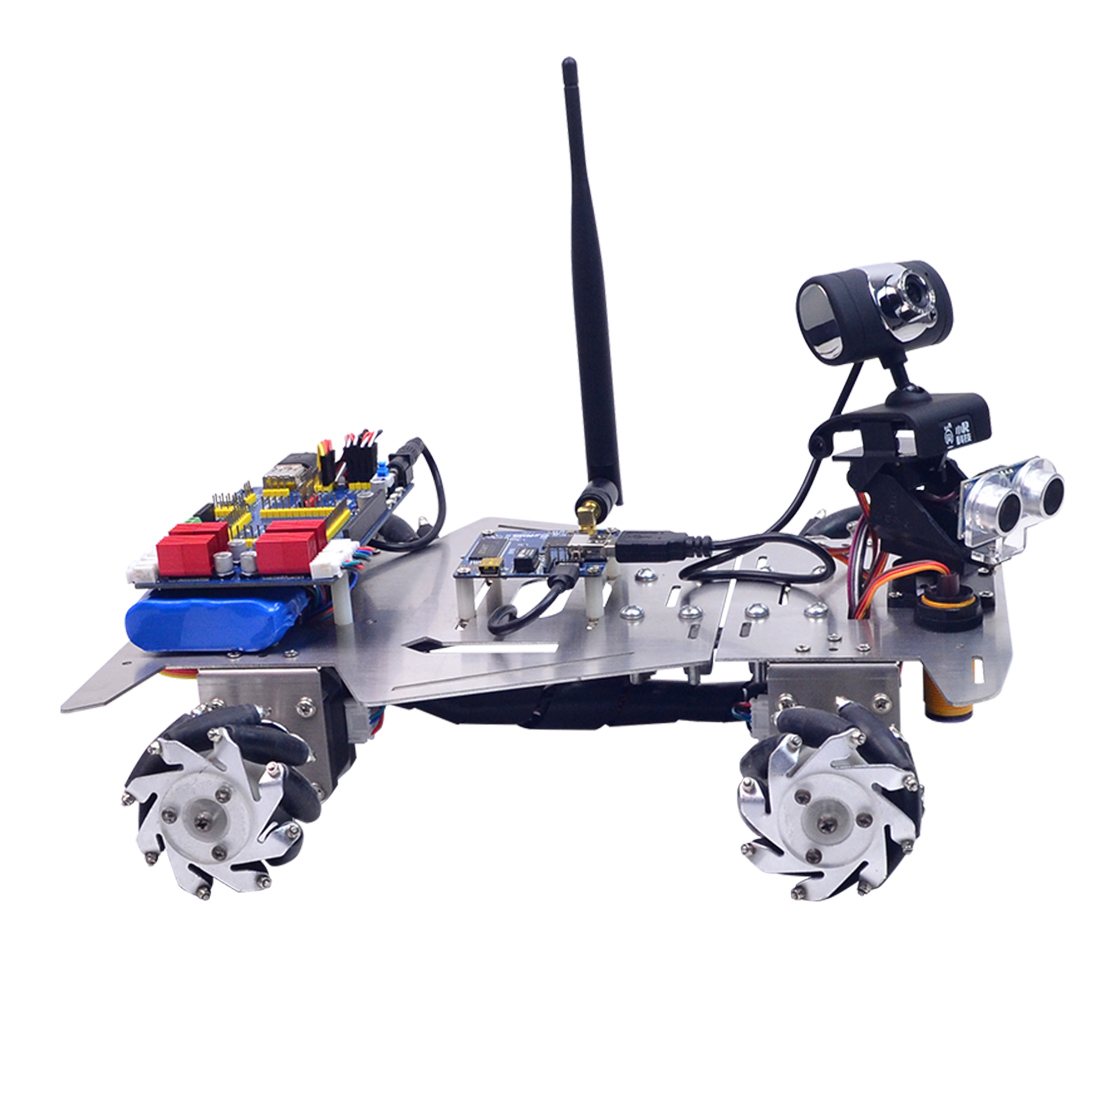 XR Master Omni-Directional Mecanum Wheel Robot Brain-Training Toy Children Education Toys -WIFI + Bluetooth Version/WIFI Version